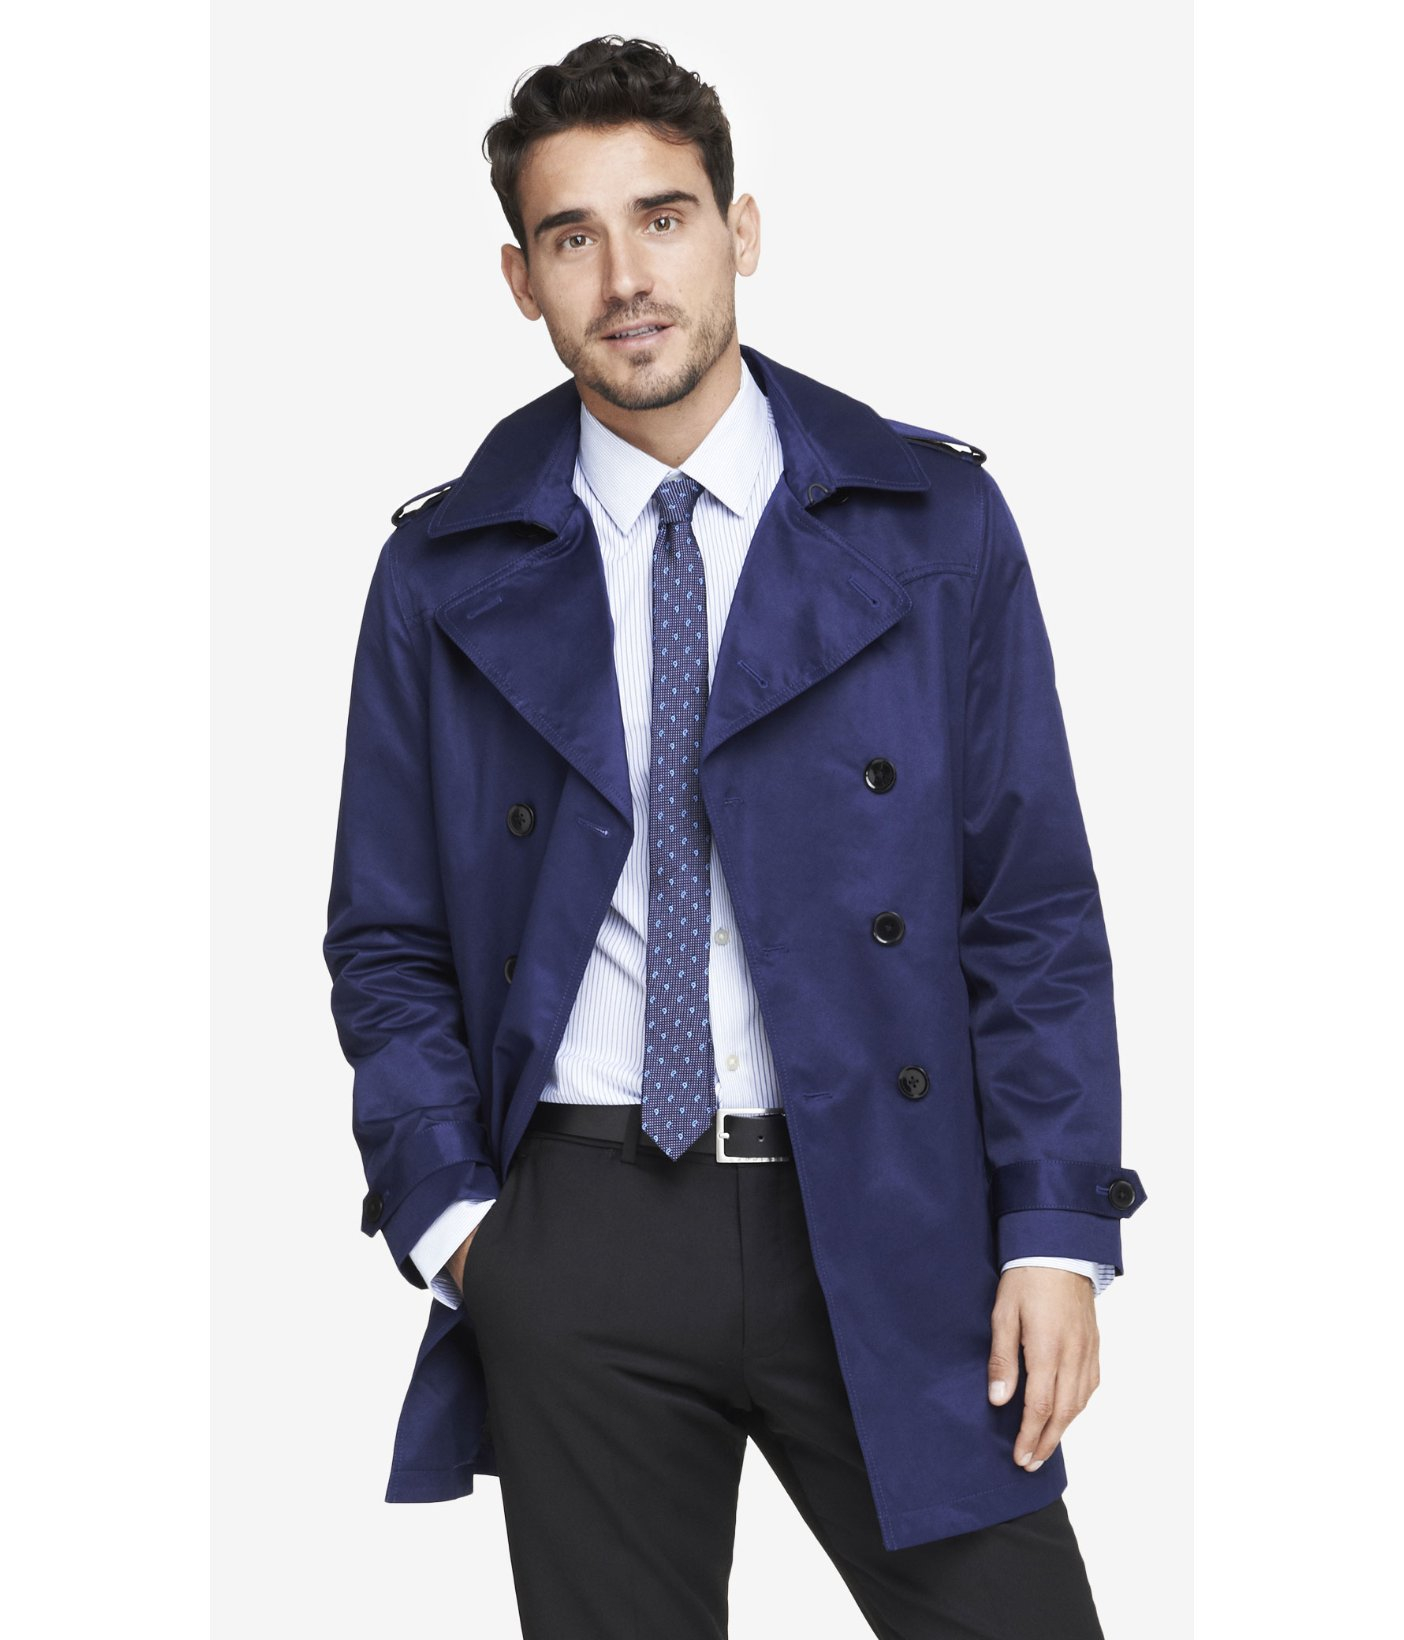 A classic trench coat design will lift your outerwear to a new level and provide you the coverage you need. An Old Navy trench coat is the piece of outerwear that can transform any outfit from casual to dressy. A trench coat is timeless, and now you can add one to your warm-weather collection at our affordable prices.